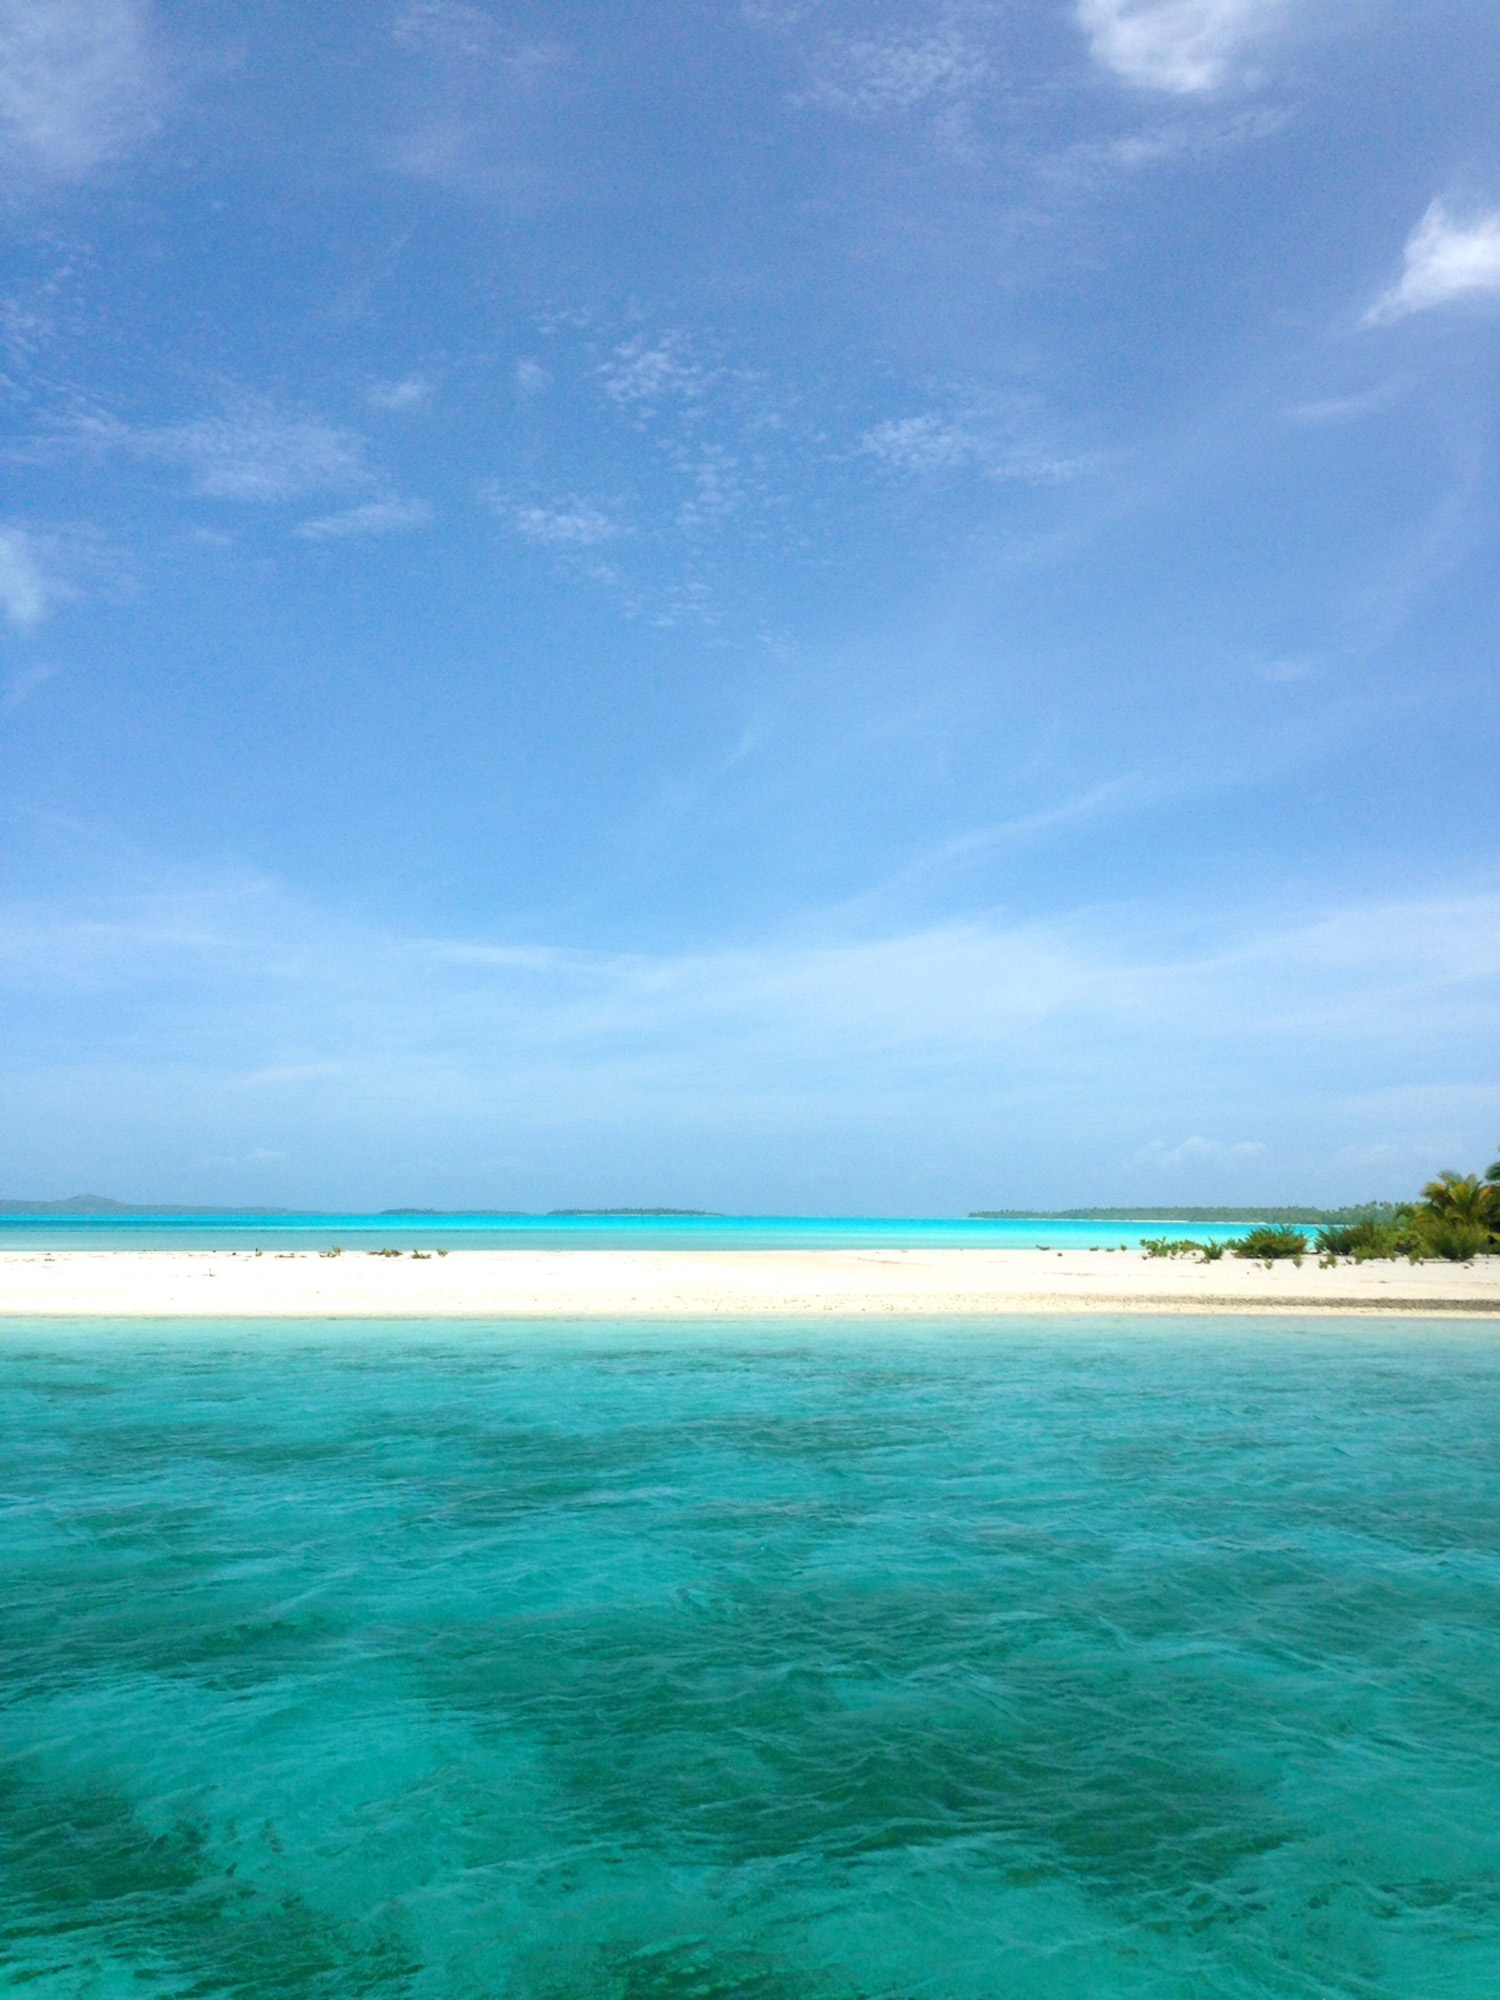 The crystal blue water and white sandy beaches of the Cook Island landscape